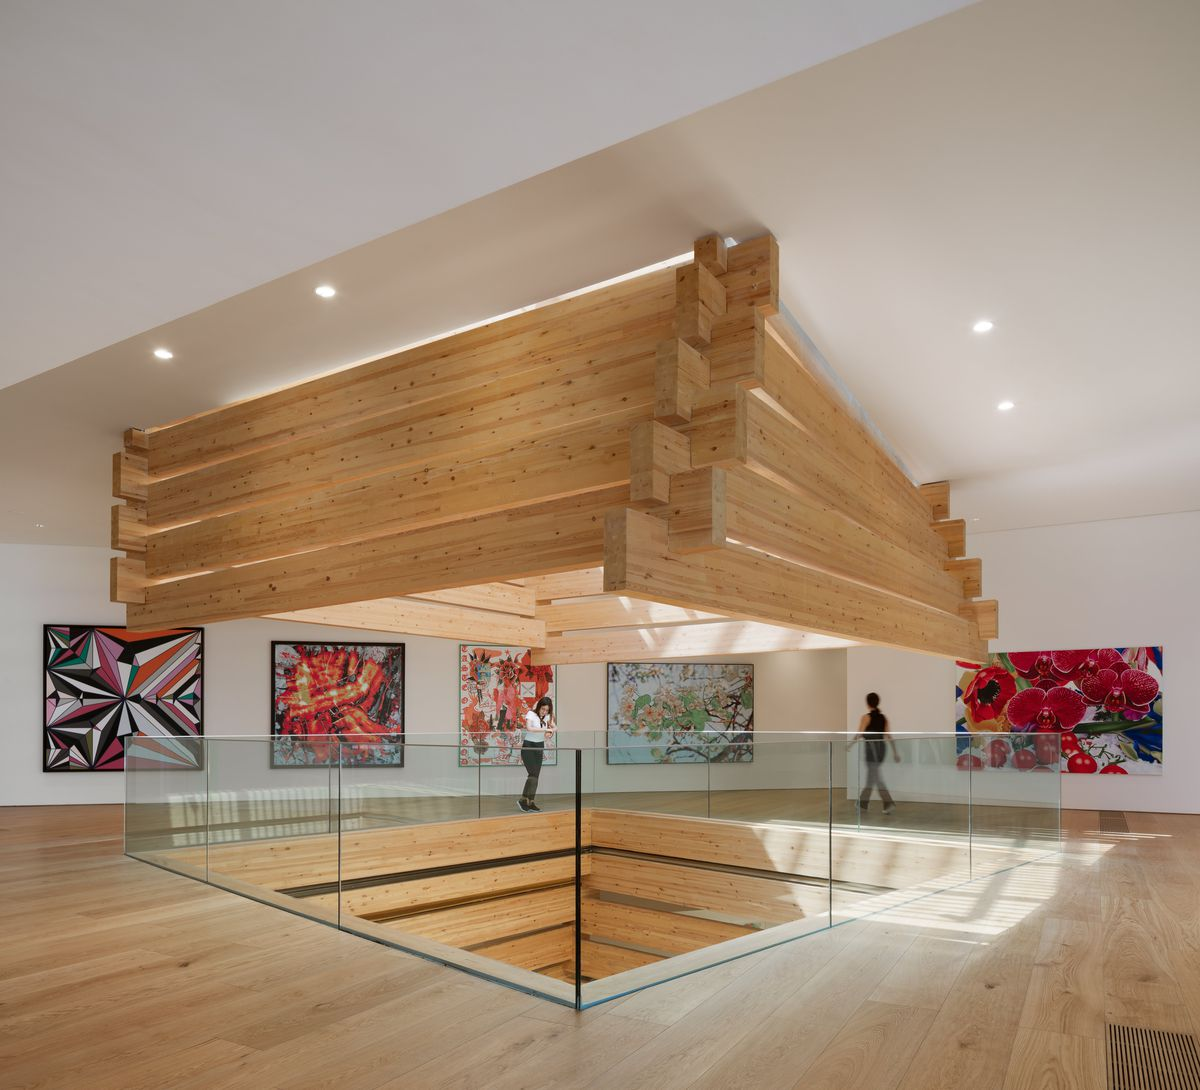 A gallery space with colorful square-shaped artwork on the walls surrounds a central atrium.